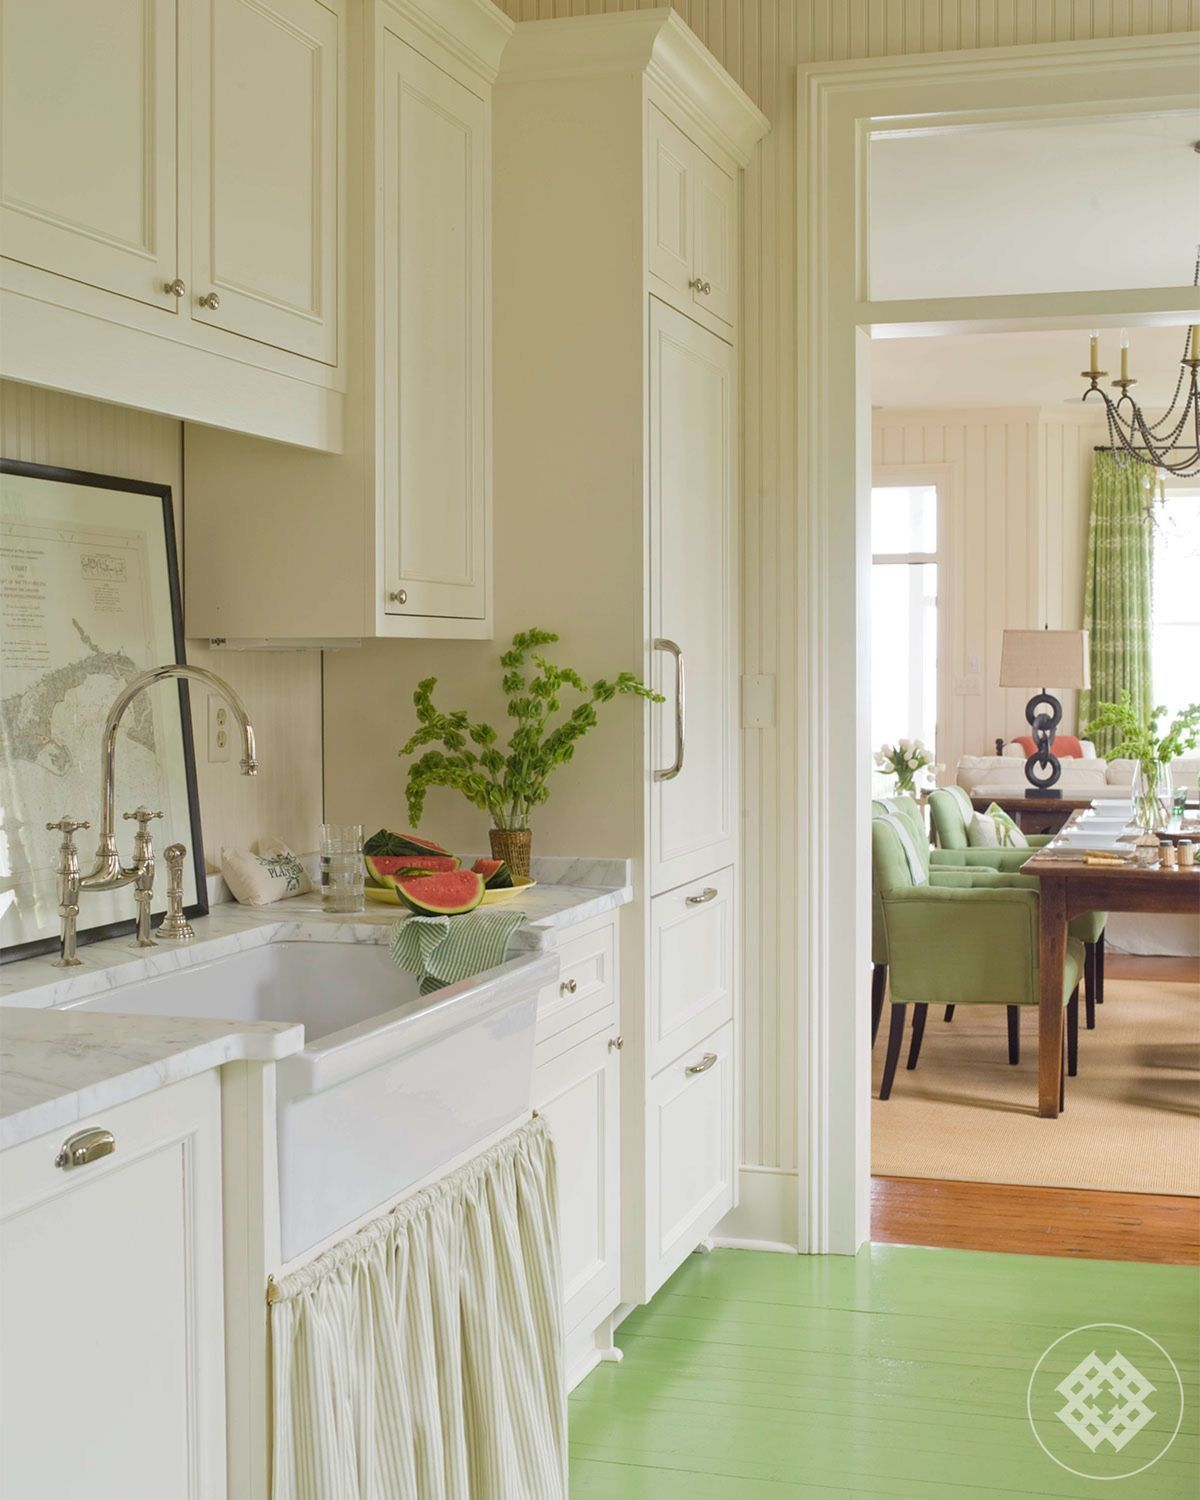 Pin by Judith Peacock on GREENERY | Kitchen flooring ...